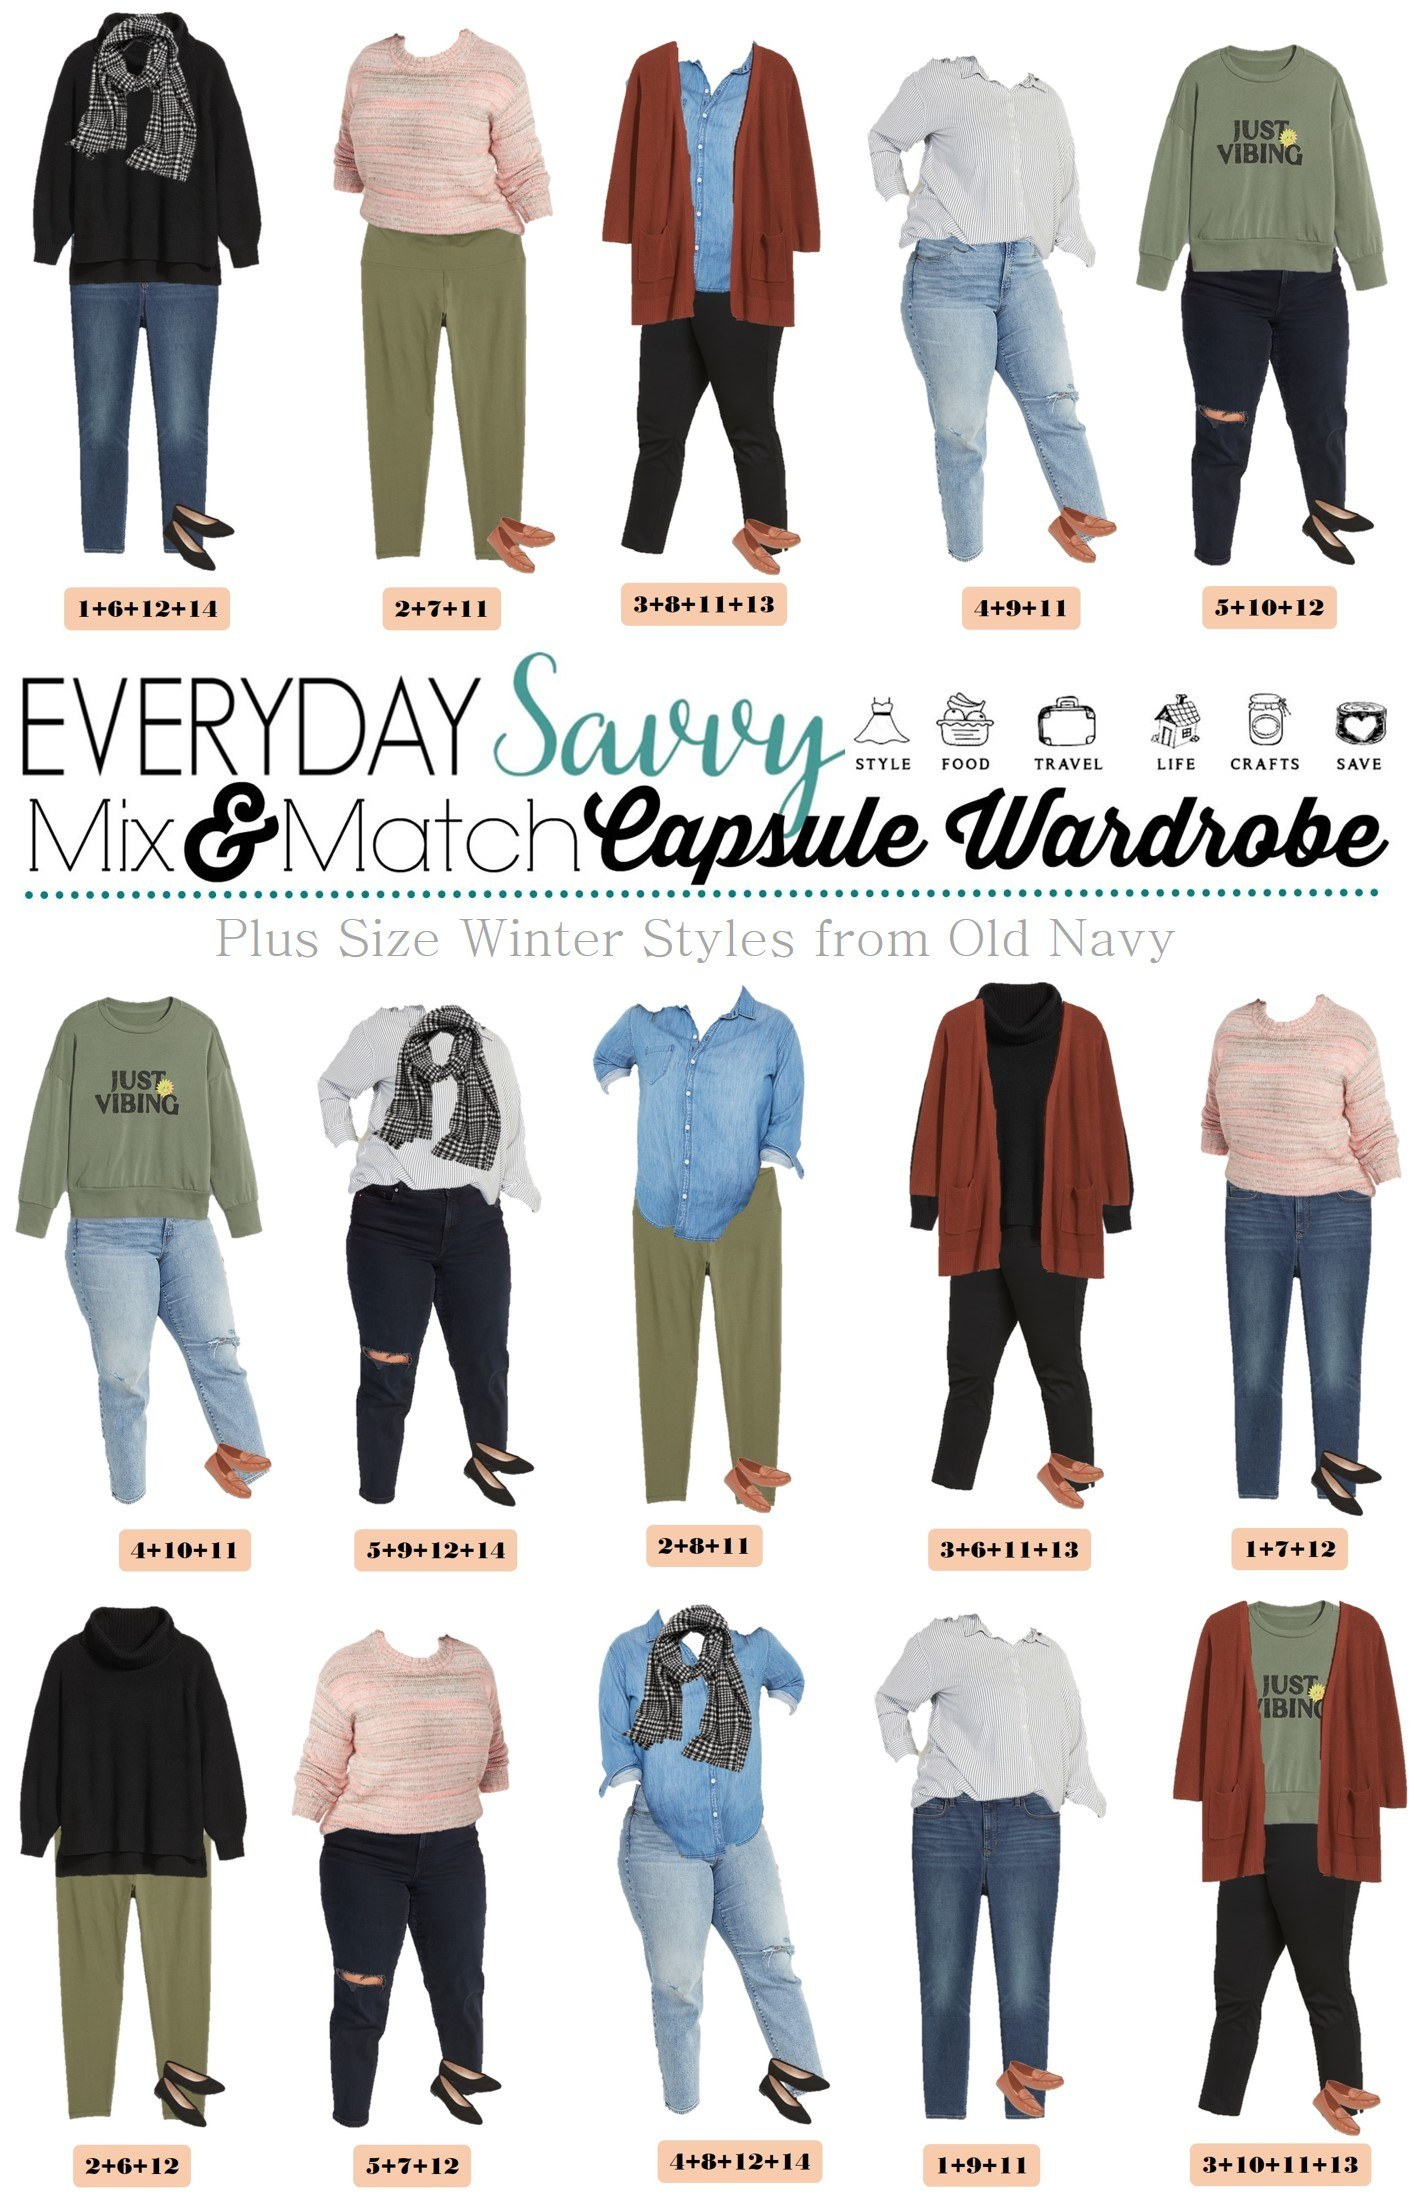 Plus Size Winter Outfits Capsule Wardrobe Outfit Ideas